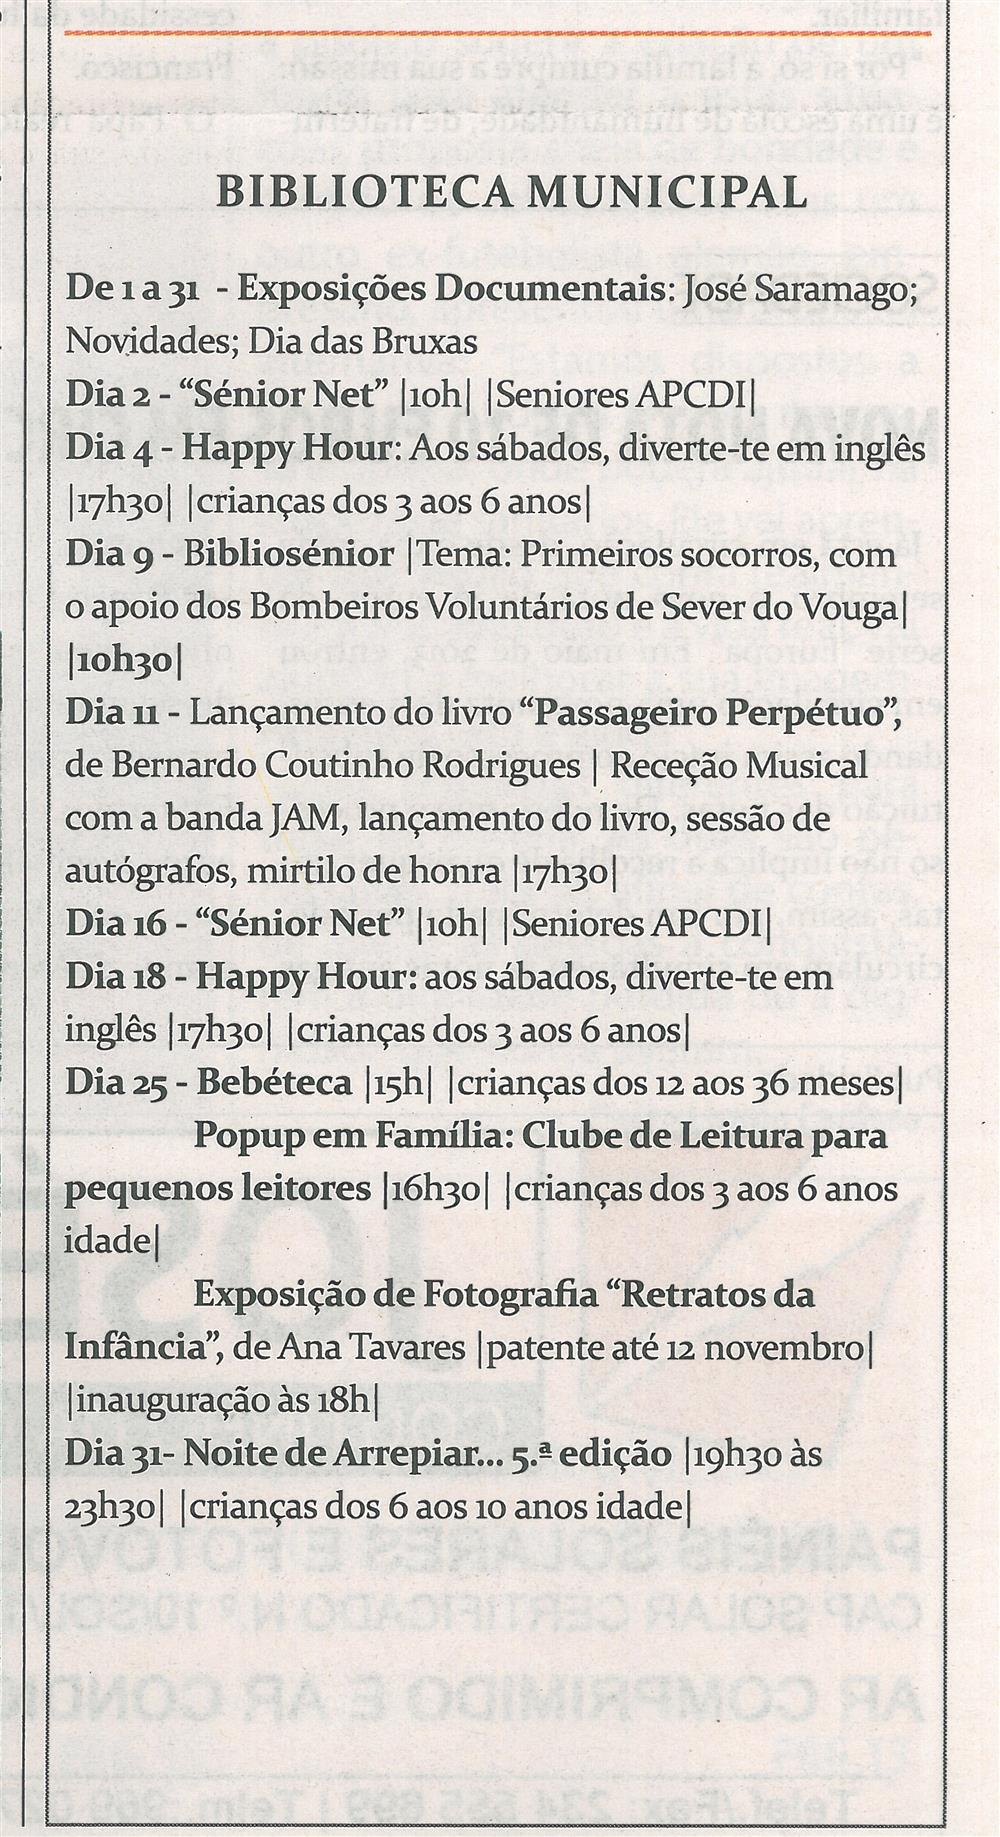 TV-out.'14-p.19-Cultura : outubro : Biblioteca Municipal.jpg